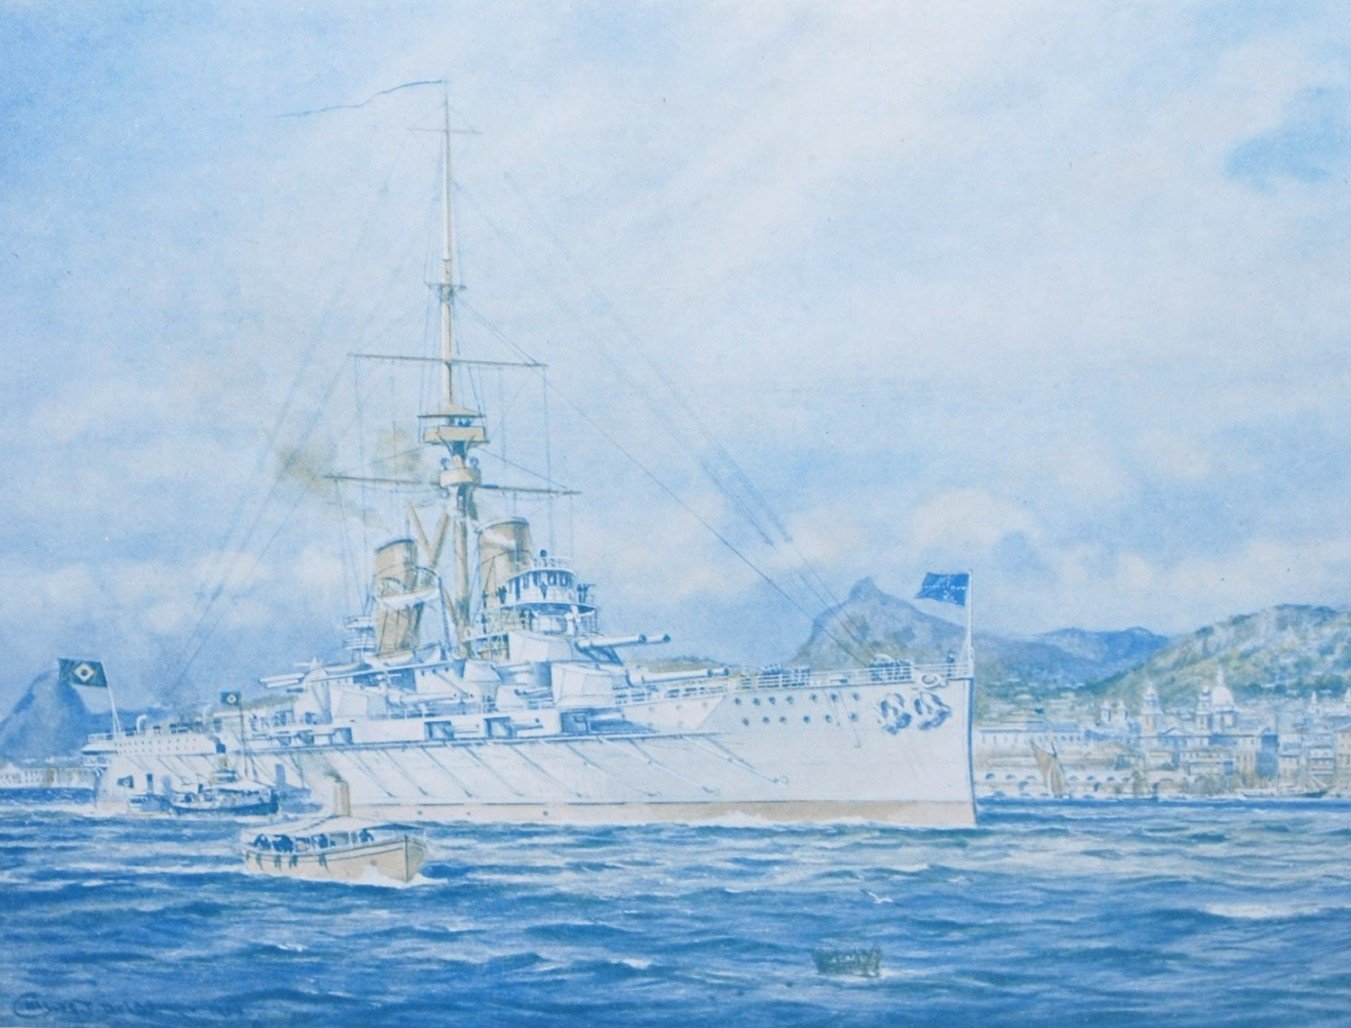 Artist's impression of 'Minas Gerais' on the launch card